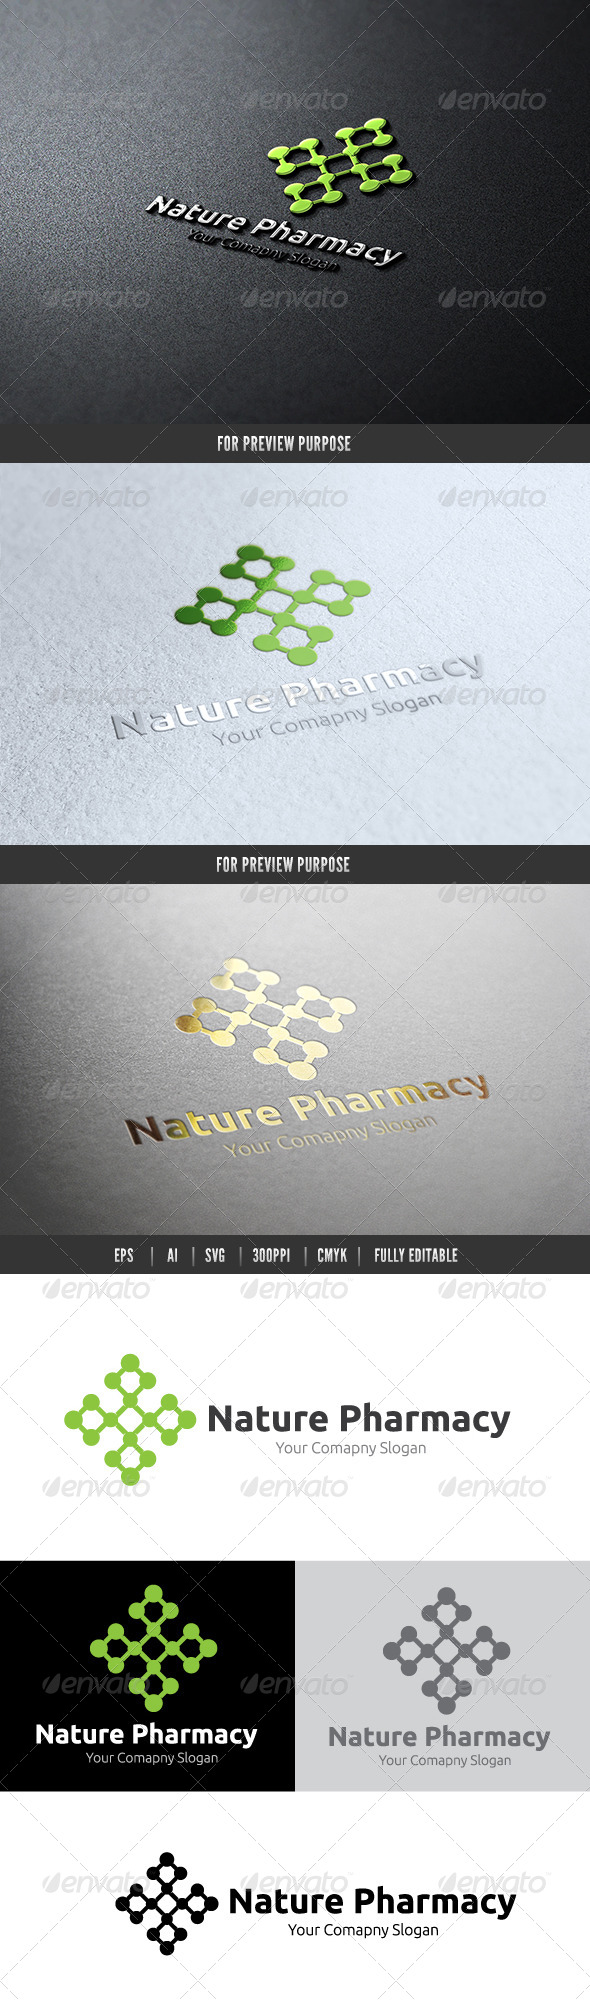 GraphicRiver Nature Pharmacy 6477970